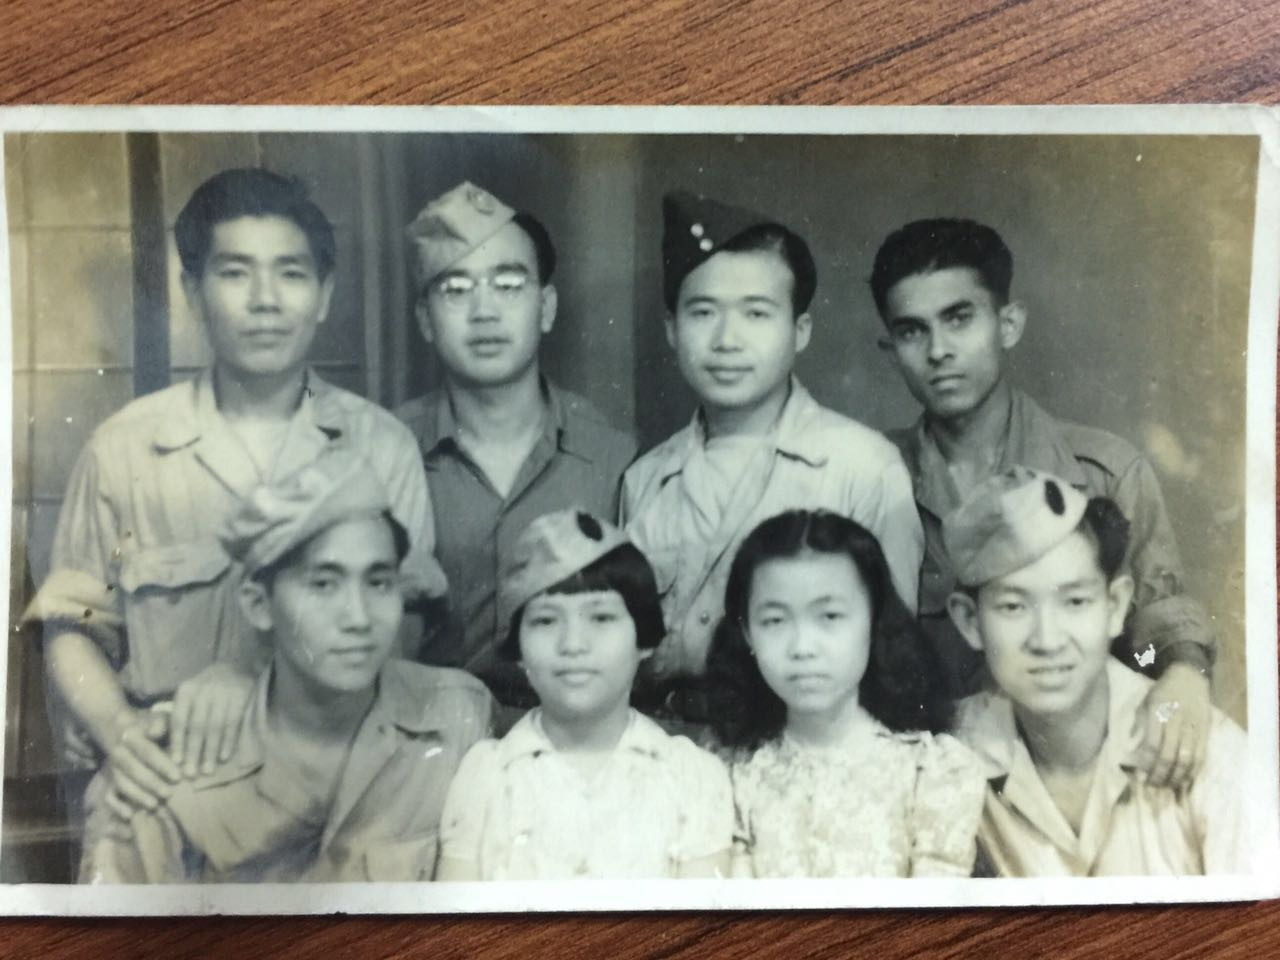 Last Survivors Lim Chung Bee at 17 years old